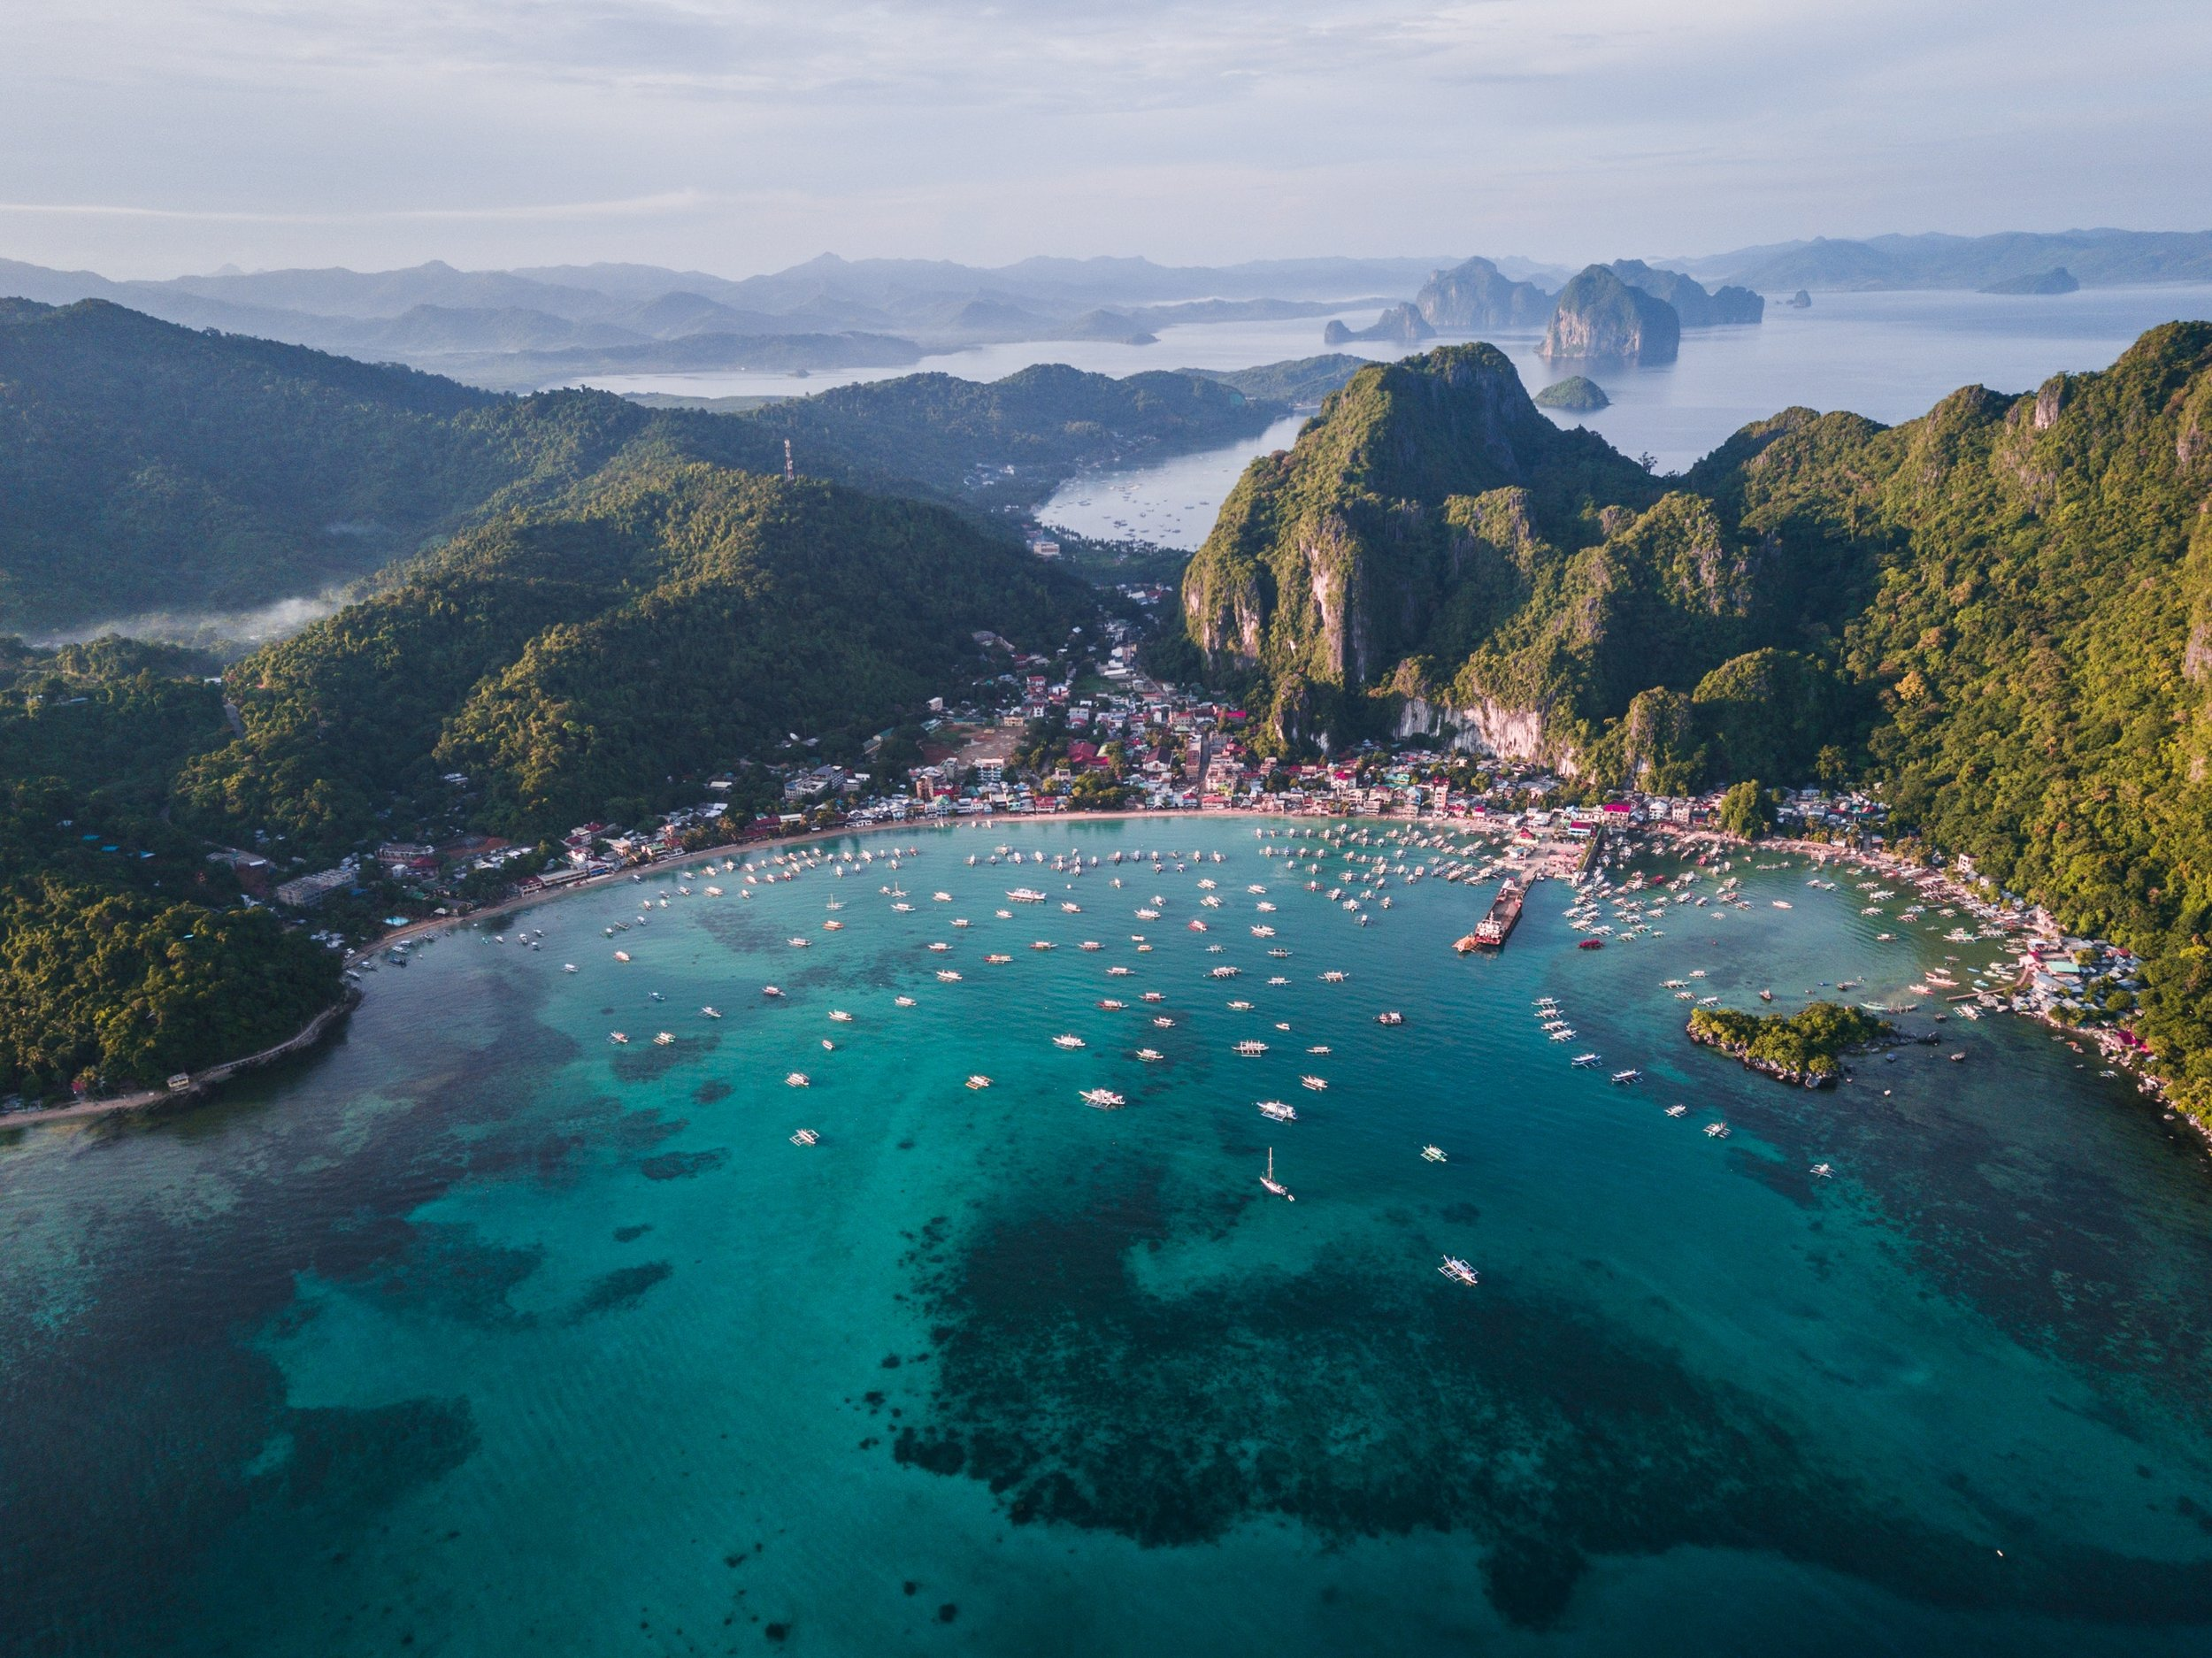 El Nido, a Philippine municipality on Palawan island is known for white-sand beaches and coral reefs.  Source:   Eibner Saliba     on   Unsplash